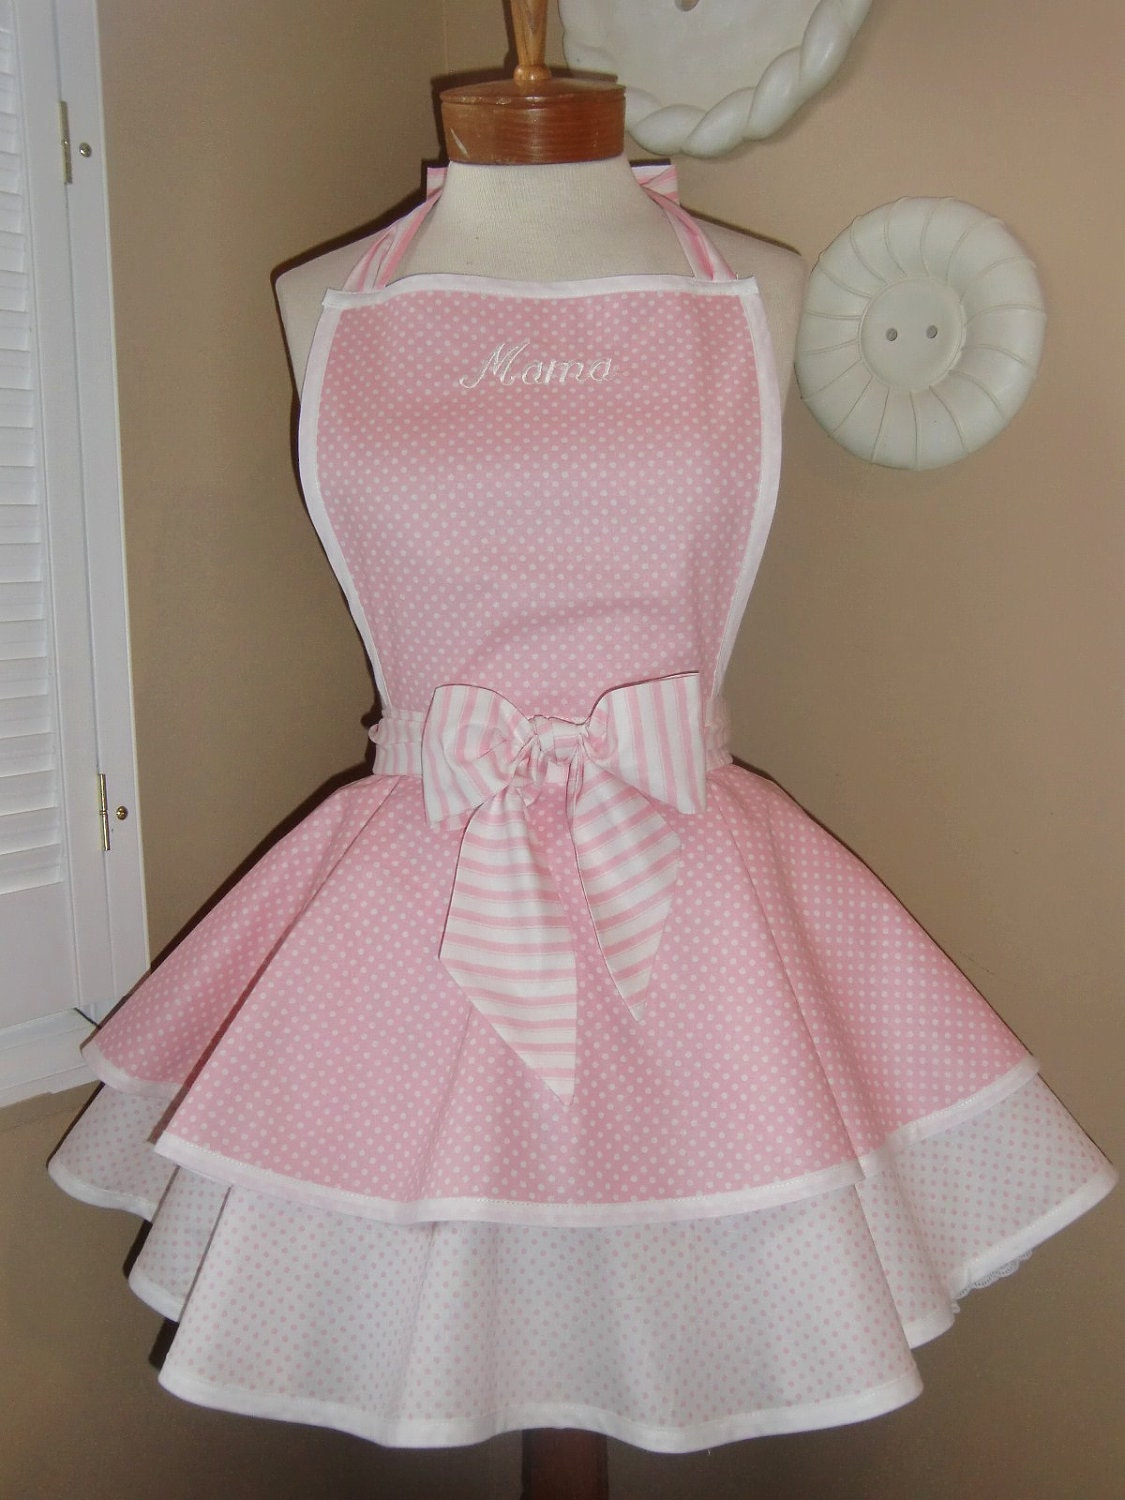 Pink dress for girl  CH strawberry milk color Pink dot charming ruffle apron  Ruffle